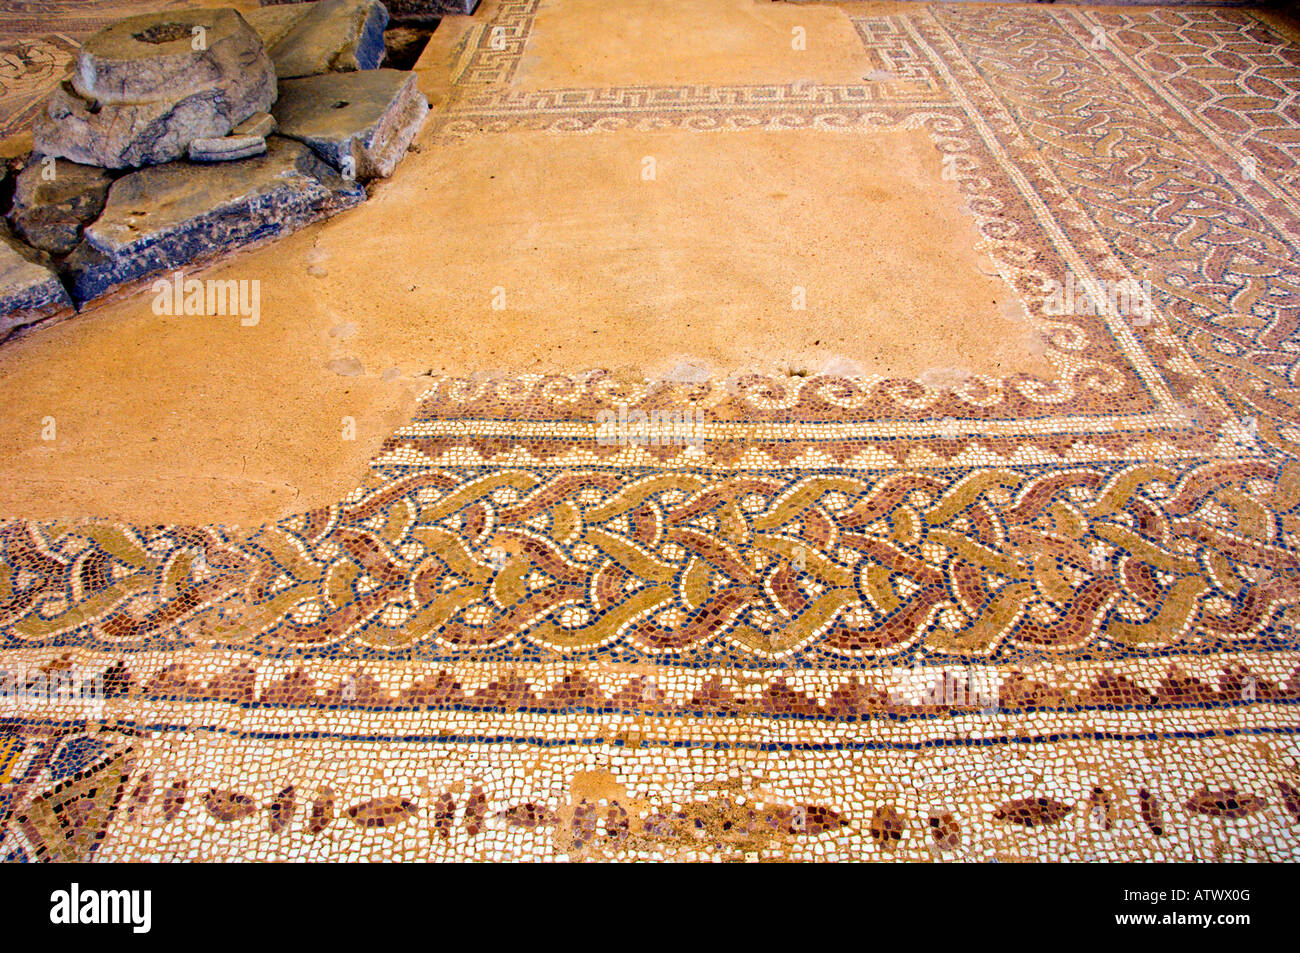 Well preserved mosaic rile work in the floors of the Basilica B section in the ruins of Phillipi Greece - Stock Image